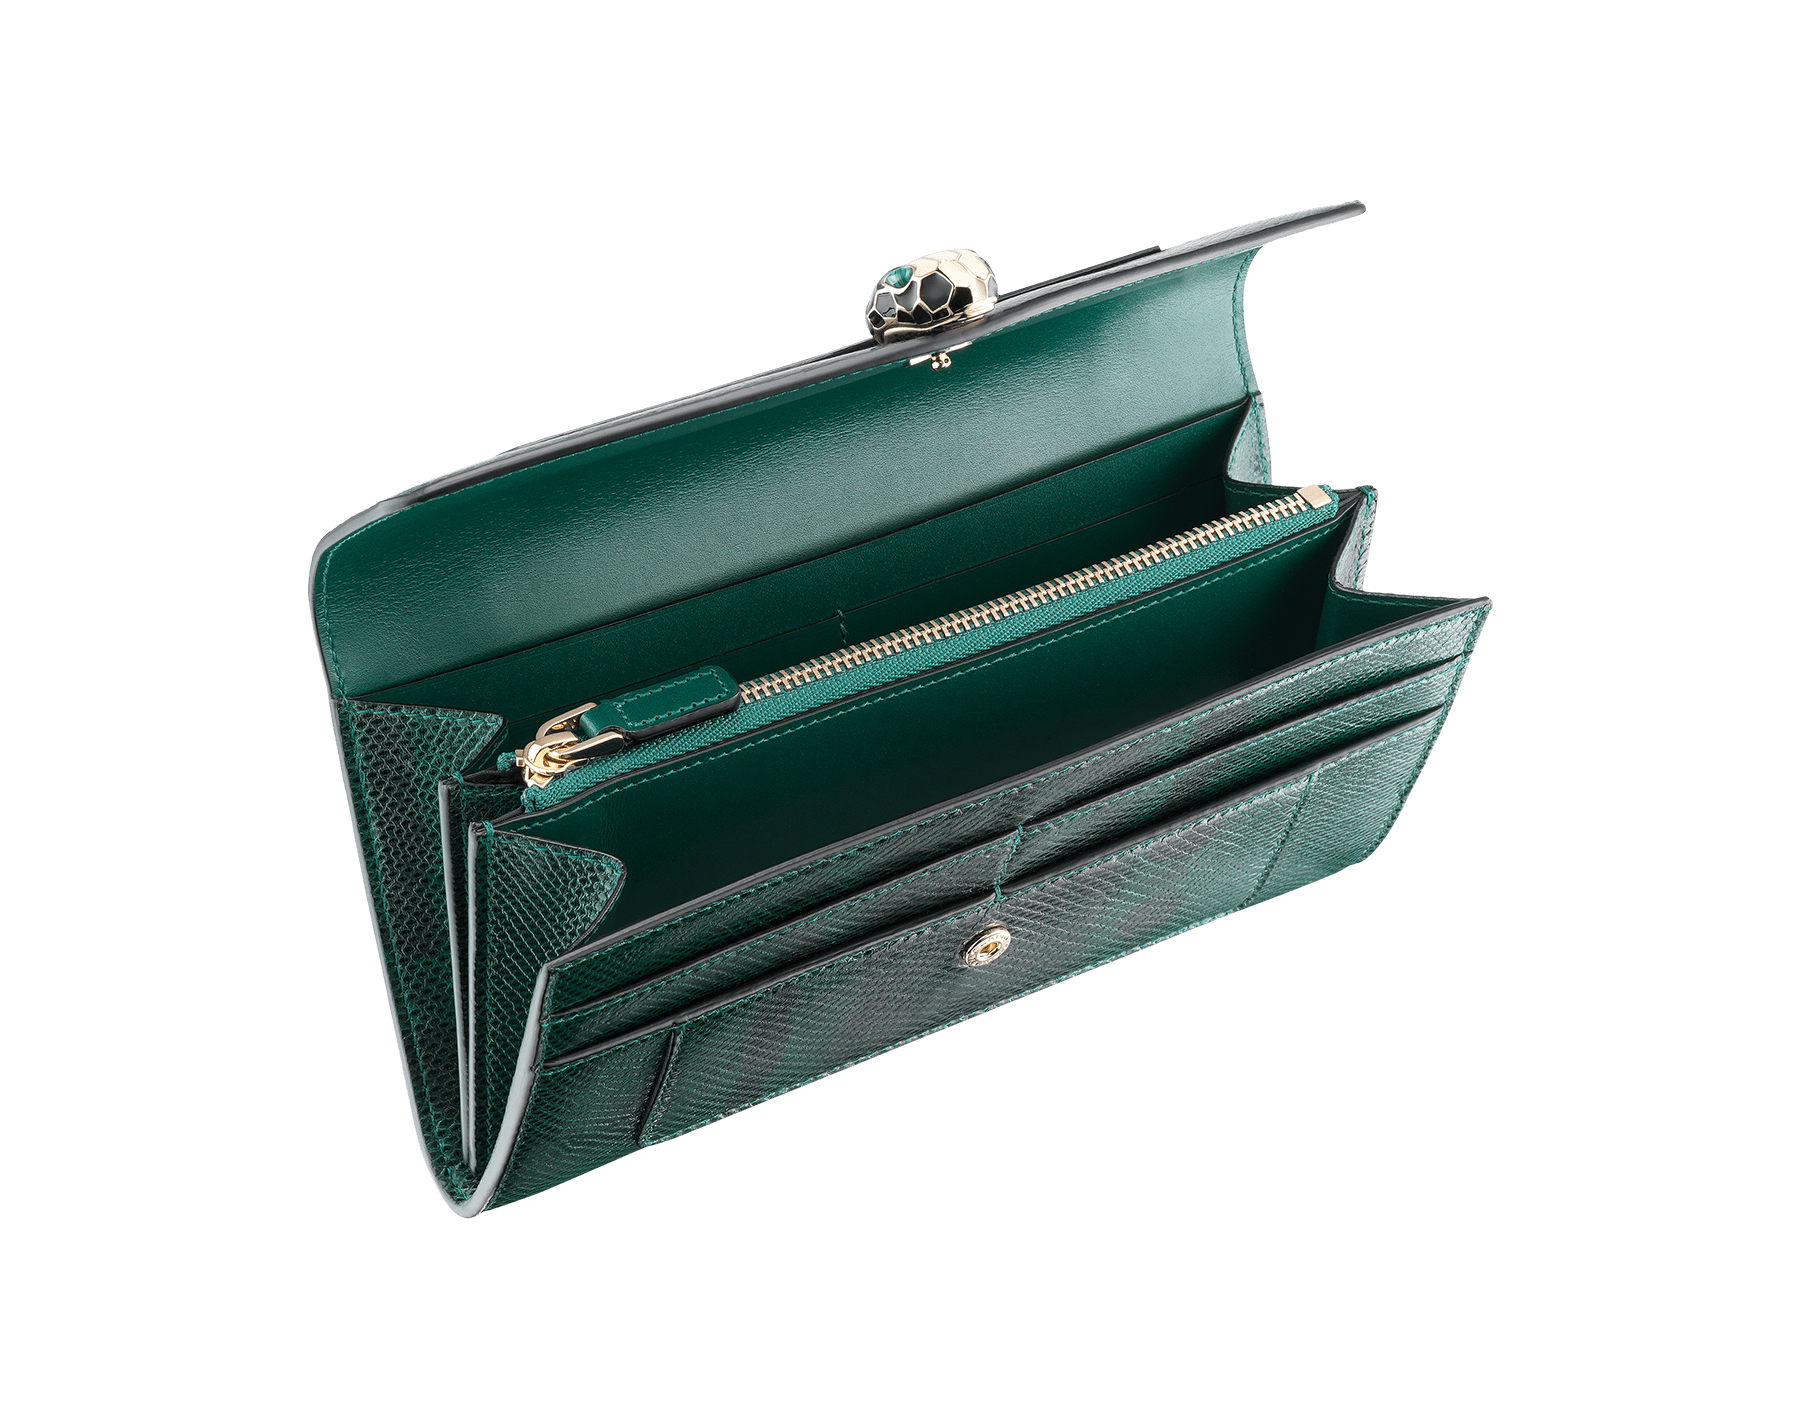 Wallet pochette in forest emerald shiny karung skin and forest emerald calf leather with tourquoise nappa lining. Brass light gold plated hardware. Serpenti head stud closure in black and white enamel with eyes in green malachite. 283820 image 2